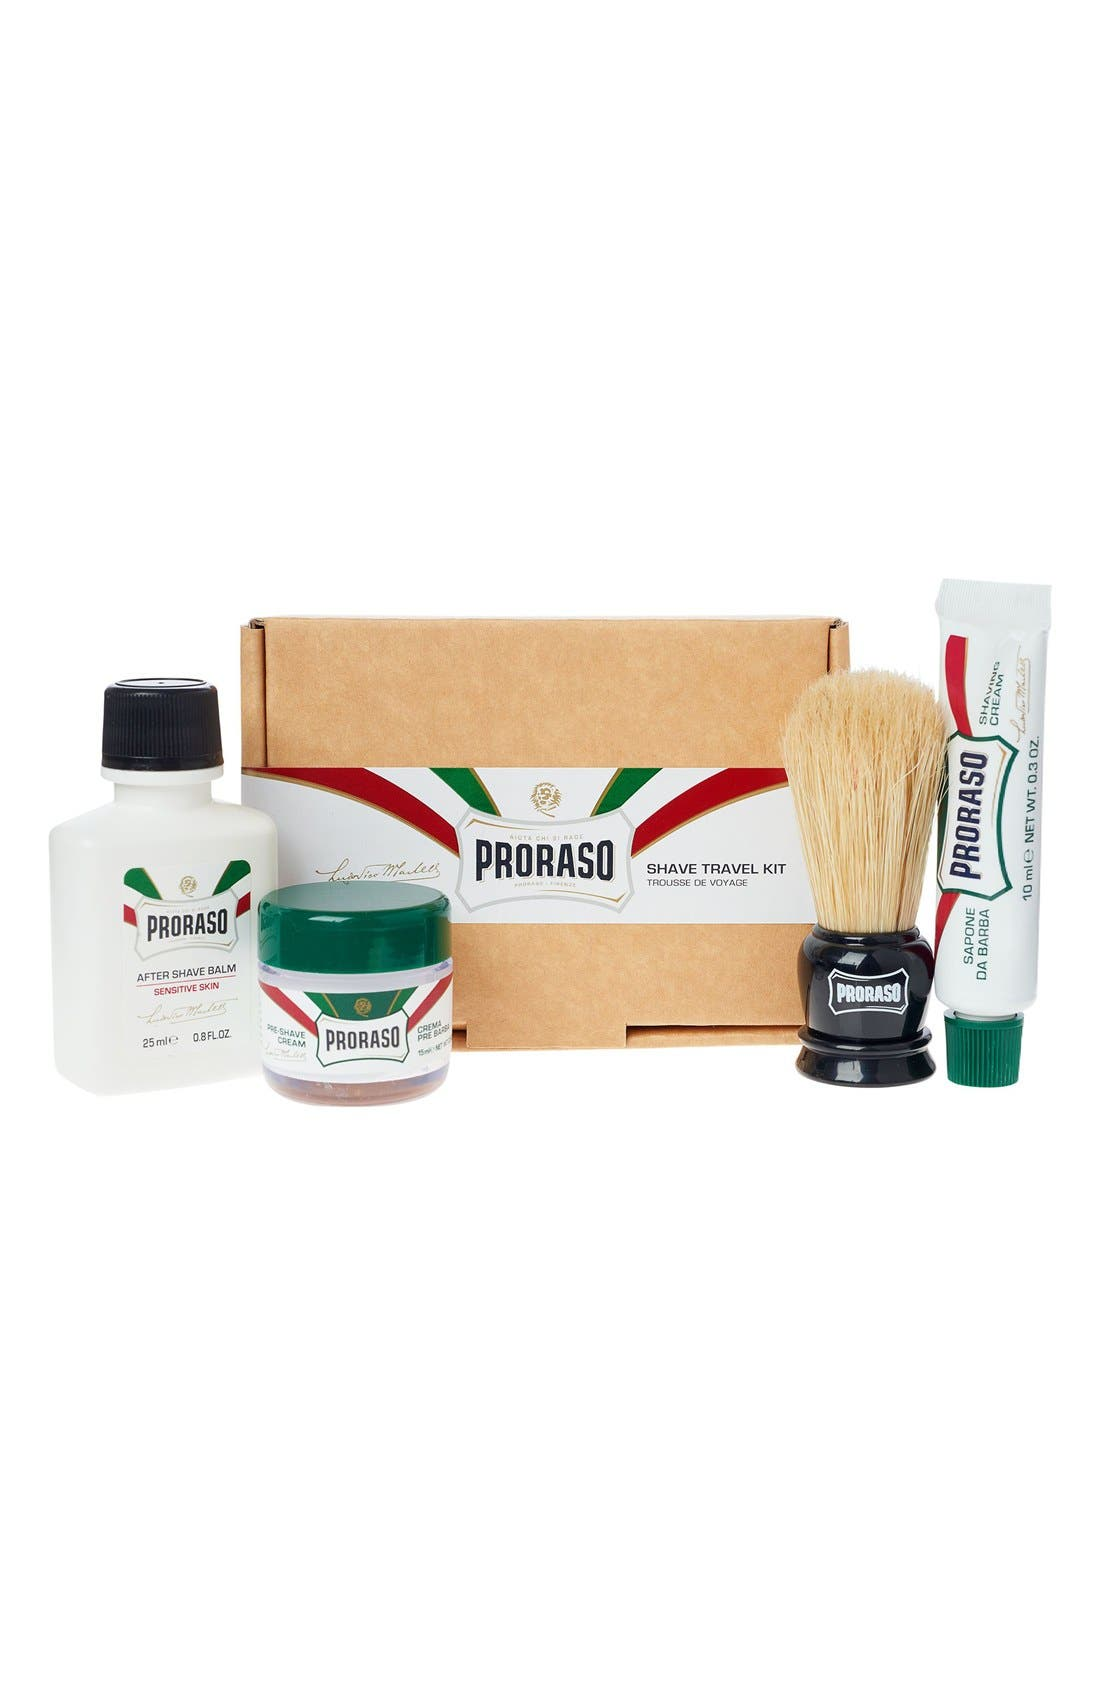 C.O. Bigelow® Proraso Shave Travel Kit (Limited Edition) ($19 Value)